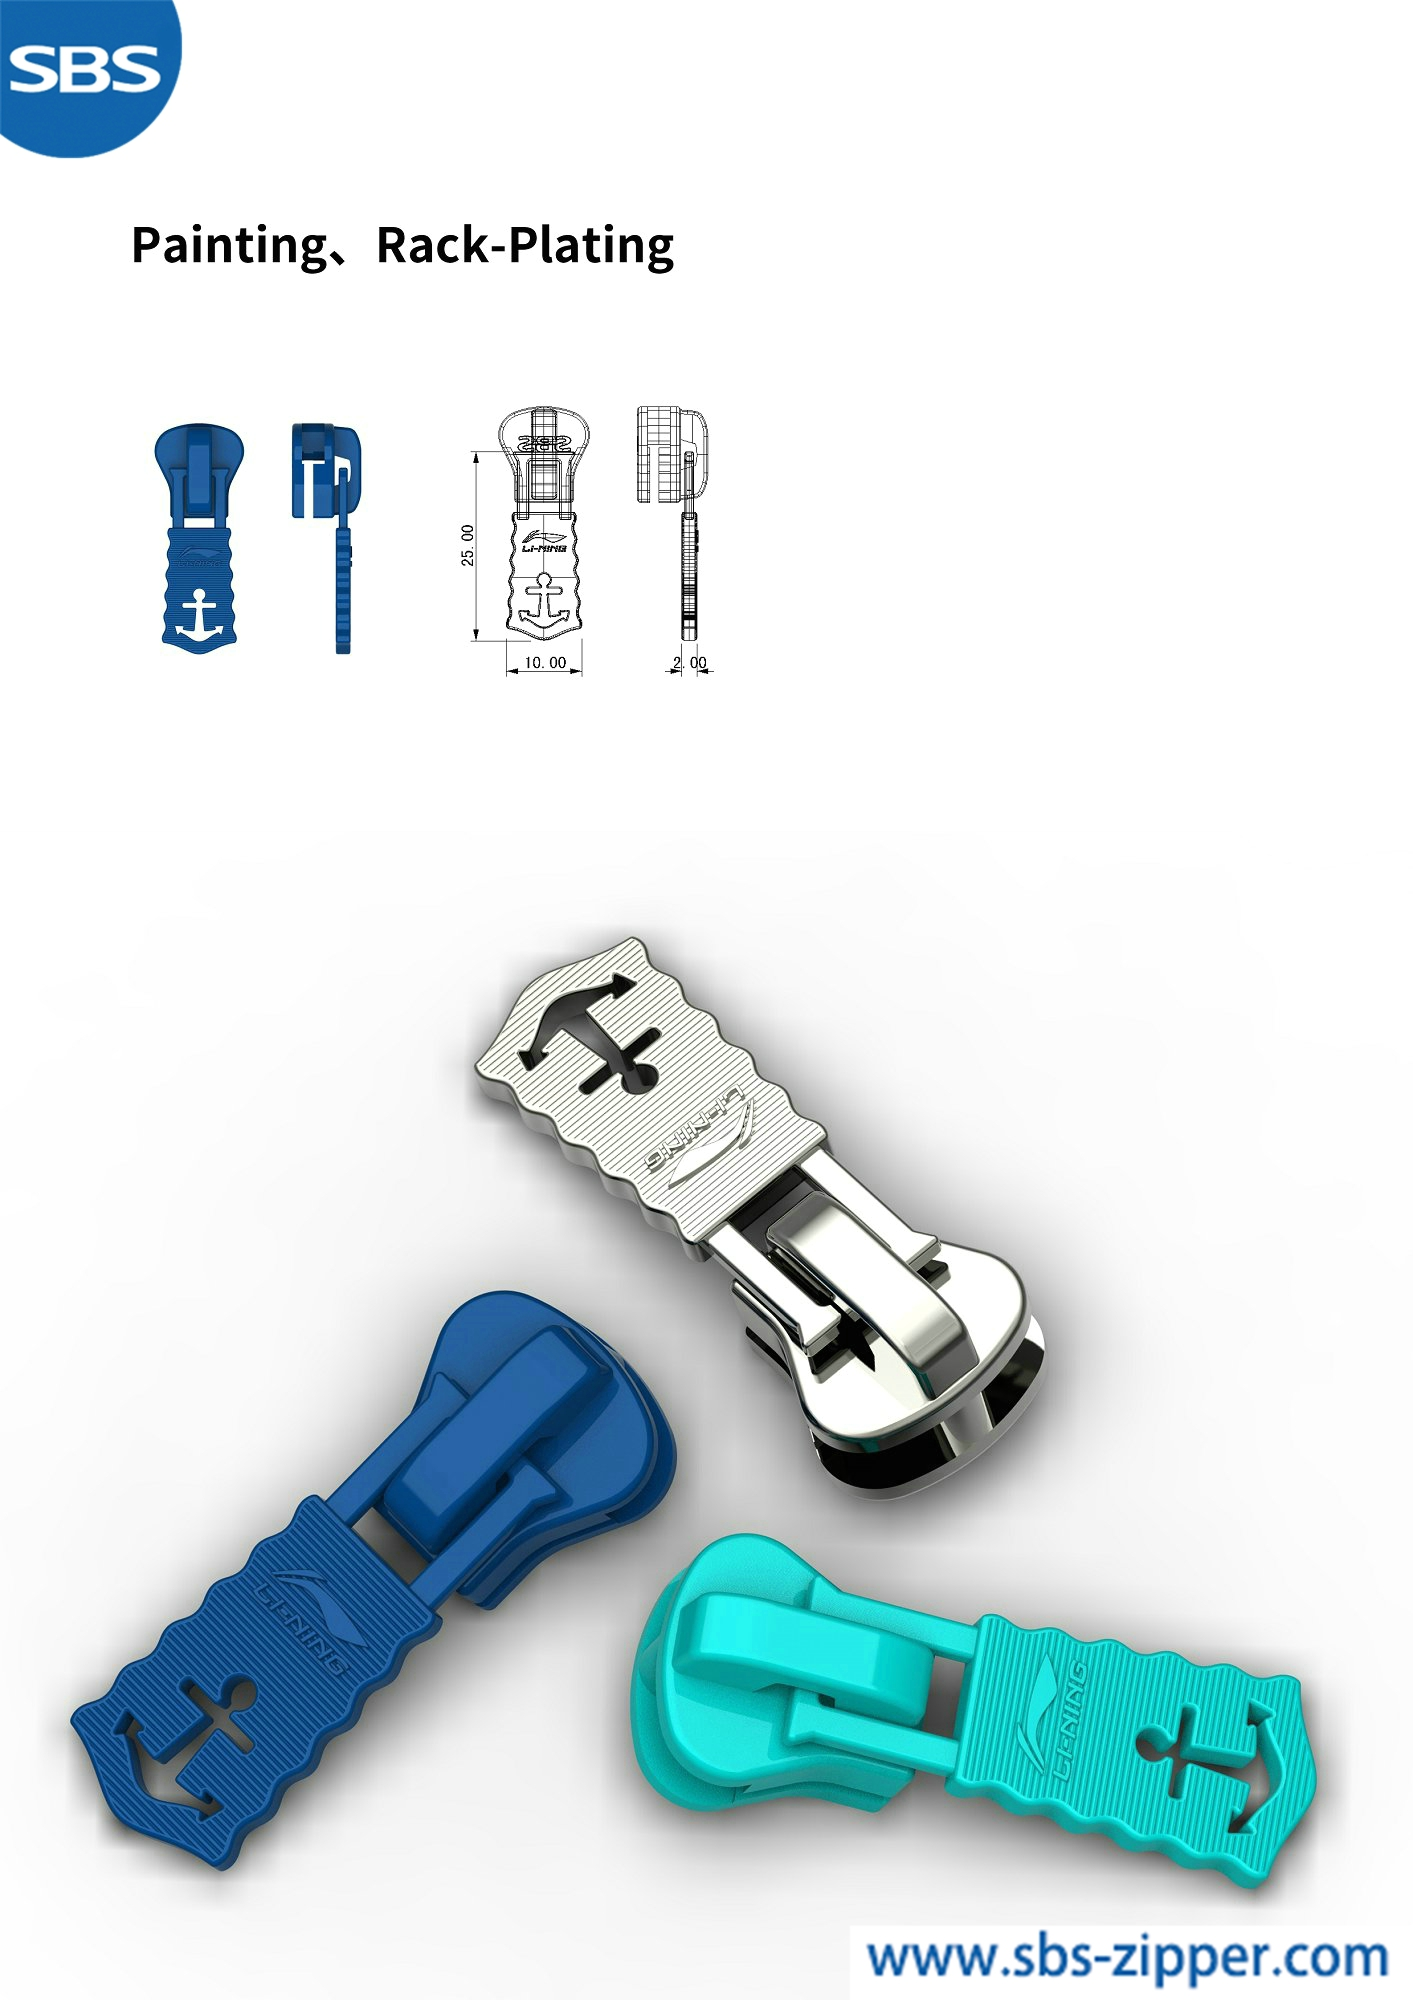 Customized Zipper Pulls Supplier 18ACC012丨sbs-zipper.com